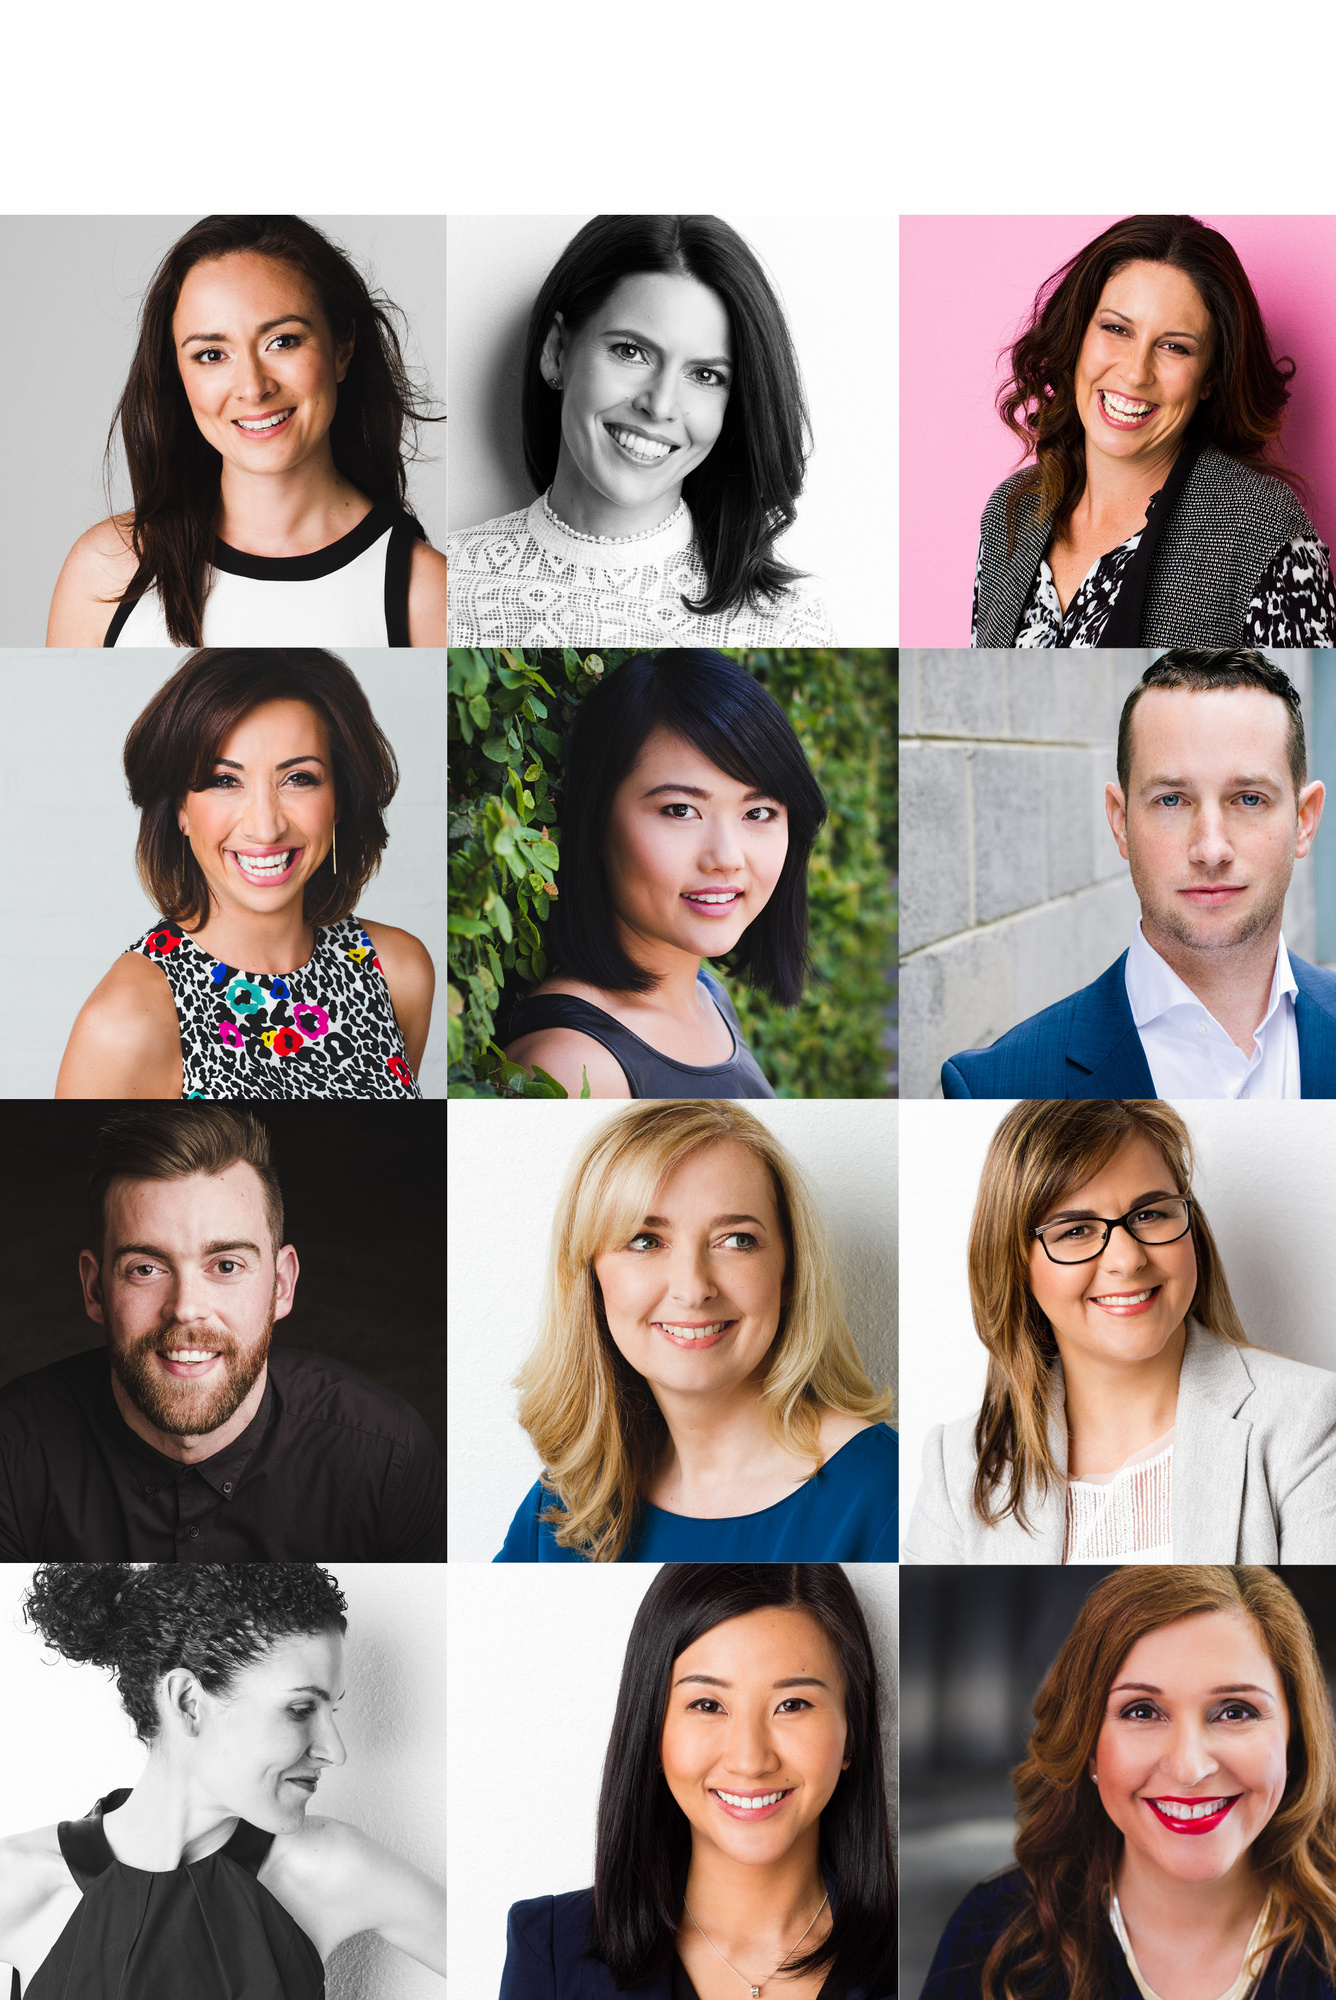 Pricing - Branding Portrait Photography and Corporate Headshots